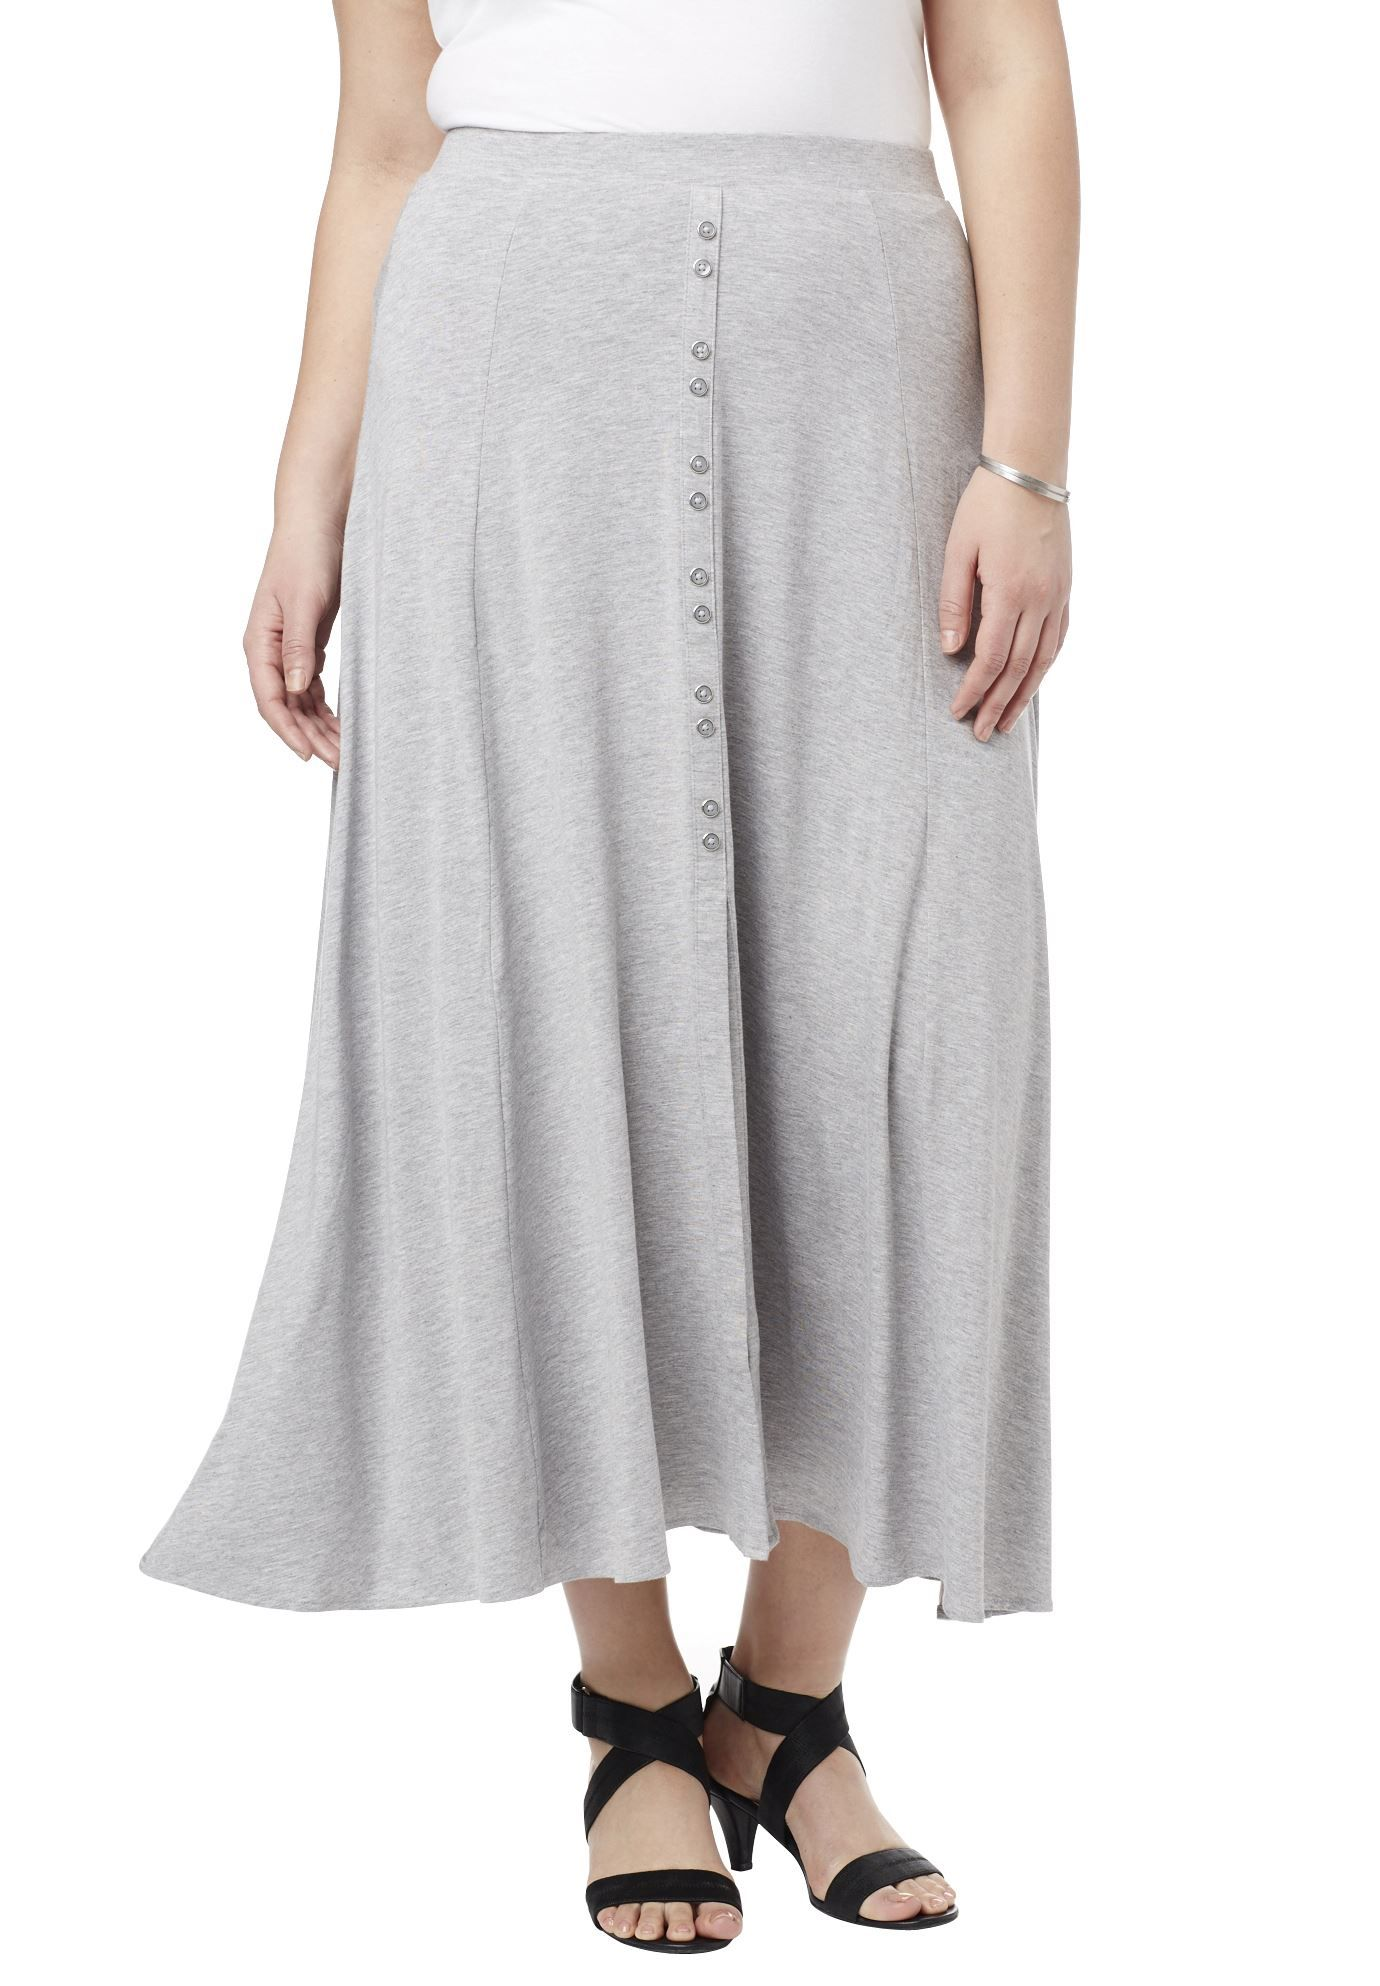 """The button detail adds a playful touch to this plus size skirt.  draped fabric panels add fullness to create a feminine figure flat elasticized waistband non-functional button front placket front slit to the knee for added movement and appeal about 38"""" rayon/spandex, machine wash, imported  plus size skirts- button maxi skirt, sizes S (12W), M (14W-16W), L (18W-20W), 1X (22W-24W), 2X (26W-28W), 3X (30W-32W), 4X (34W-36W), 5X (38W-40W) In Style Now! Maxi skirts are making a comeback thi..."""